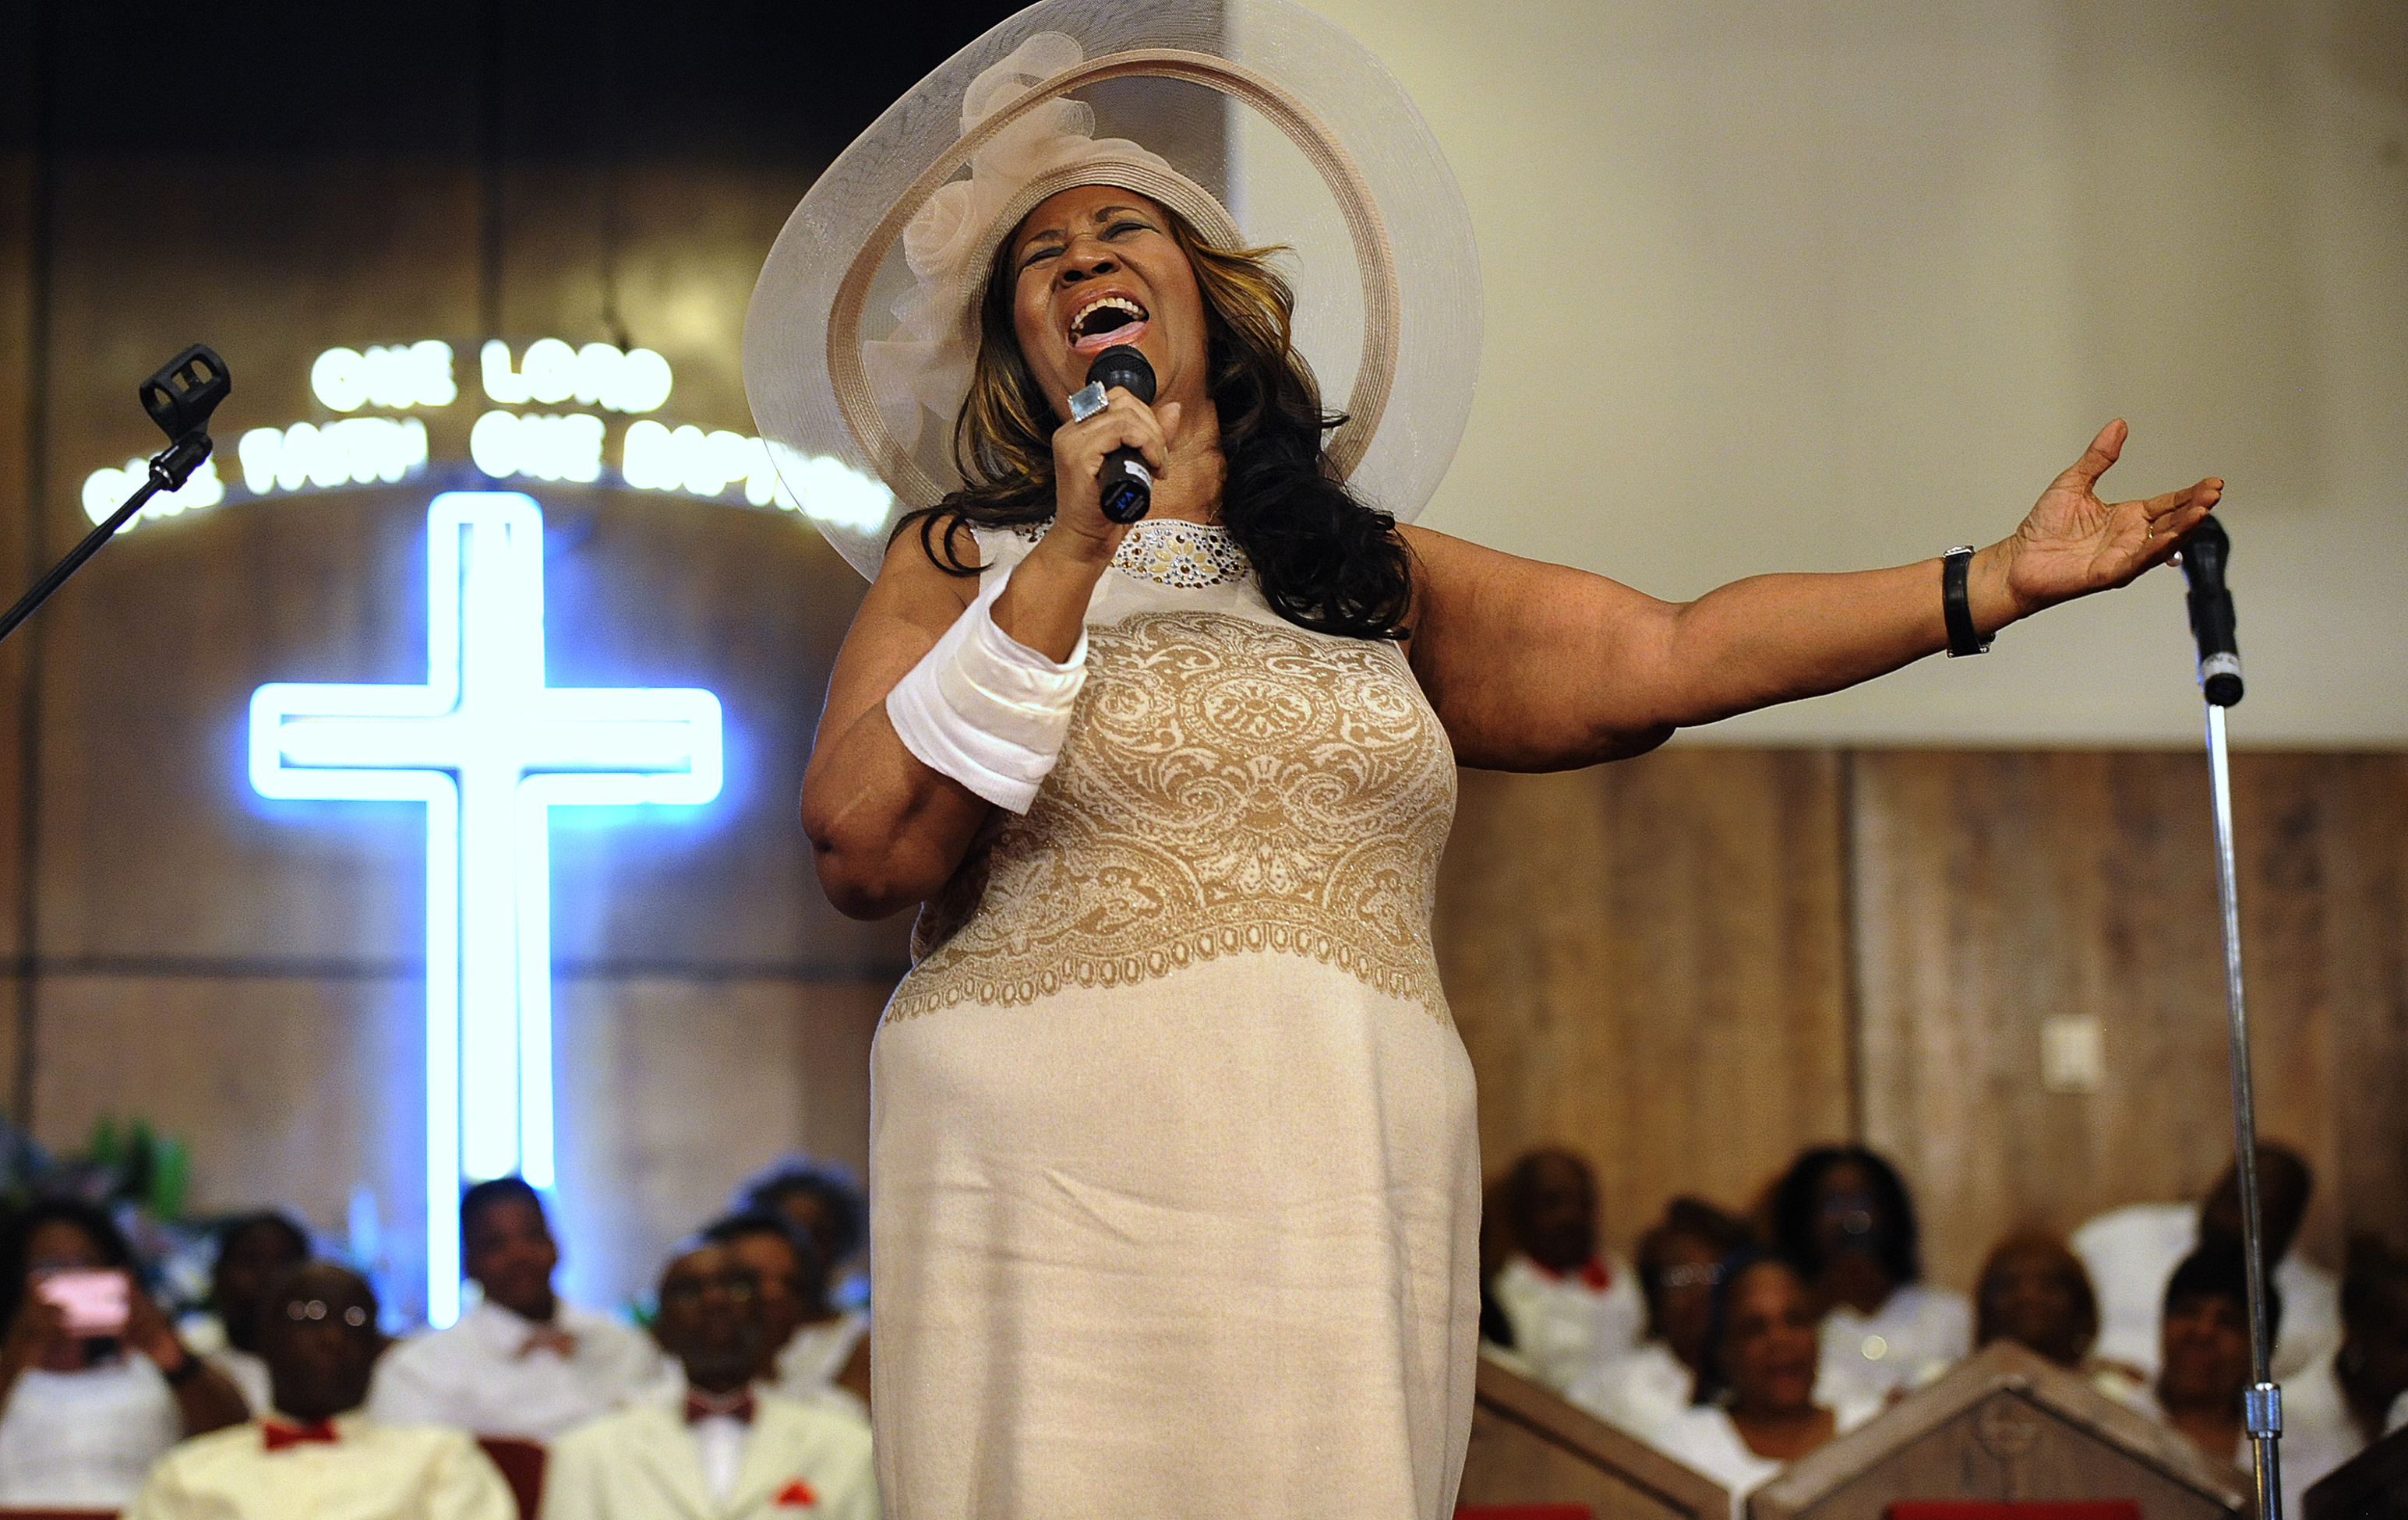 FILE - In this June 7, 2015 file photo, Aretha Franklin sings during a memorial service for her father and brother, Rev. C.L. and Rev. Cecil Franklin, at New Bethel Baptist Church where they were ministers, in Detroit. (Elizabeth Conley/The Detroit News via AP, File)